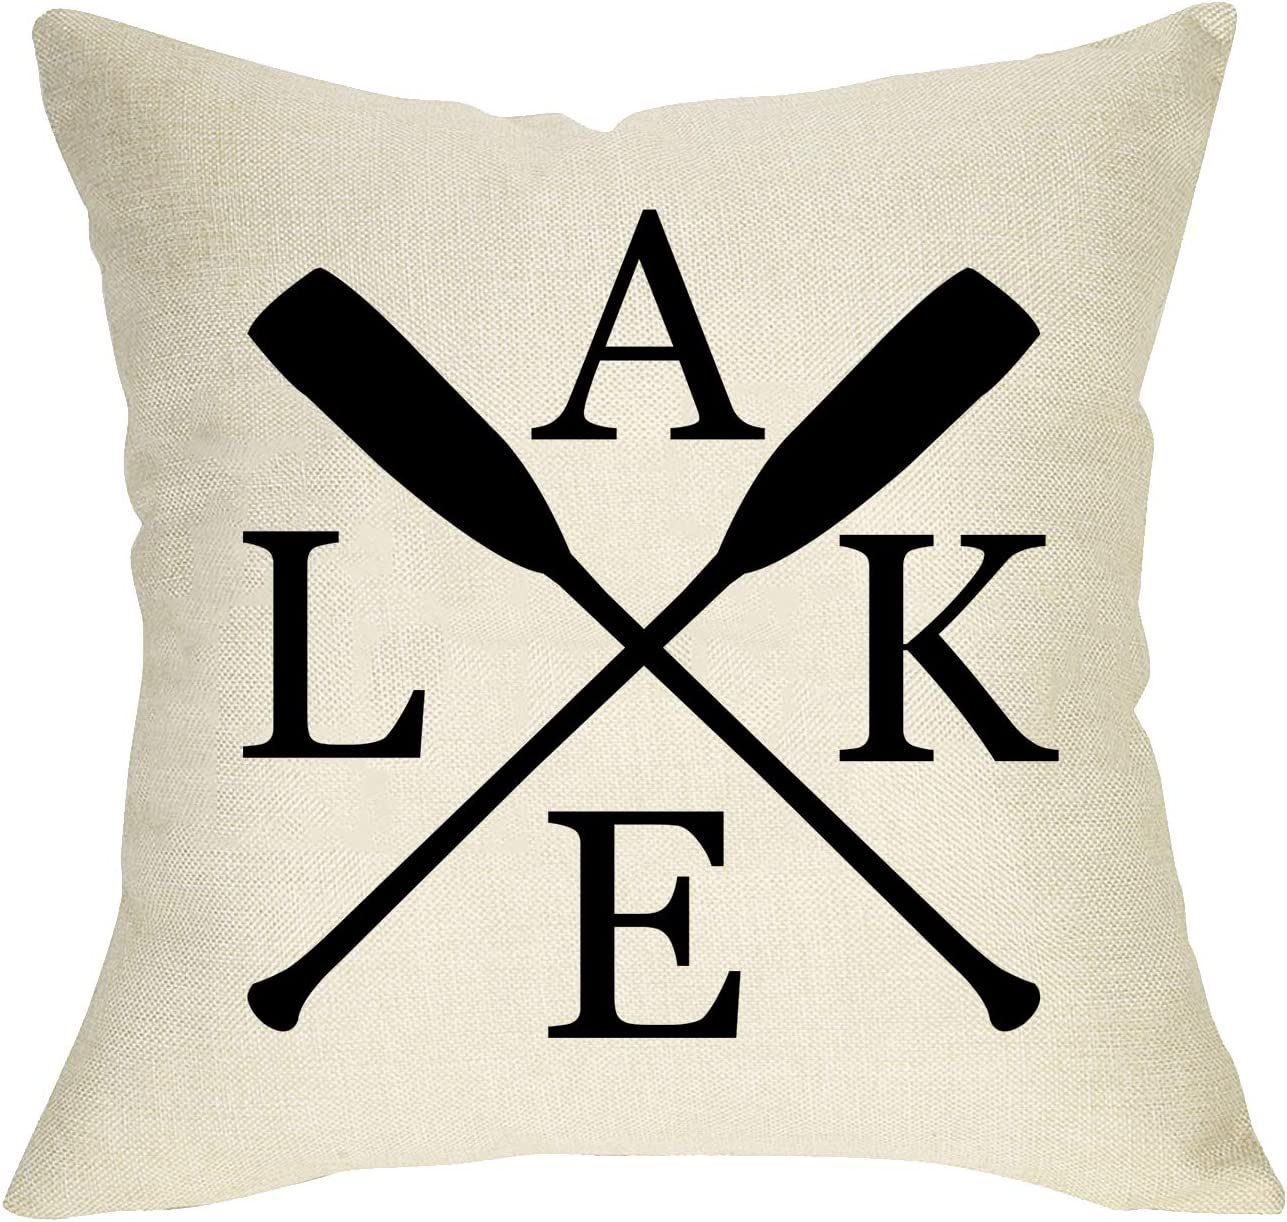 Softxpp Home Decorative Throw Pillow Cover Lake with Paddle, Rustic Farmhouse Cushion Case Spring Summer Home Square Pillowcase Decor for Sofa Couch Decoration 18 x 18 Inch Cotton Linen